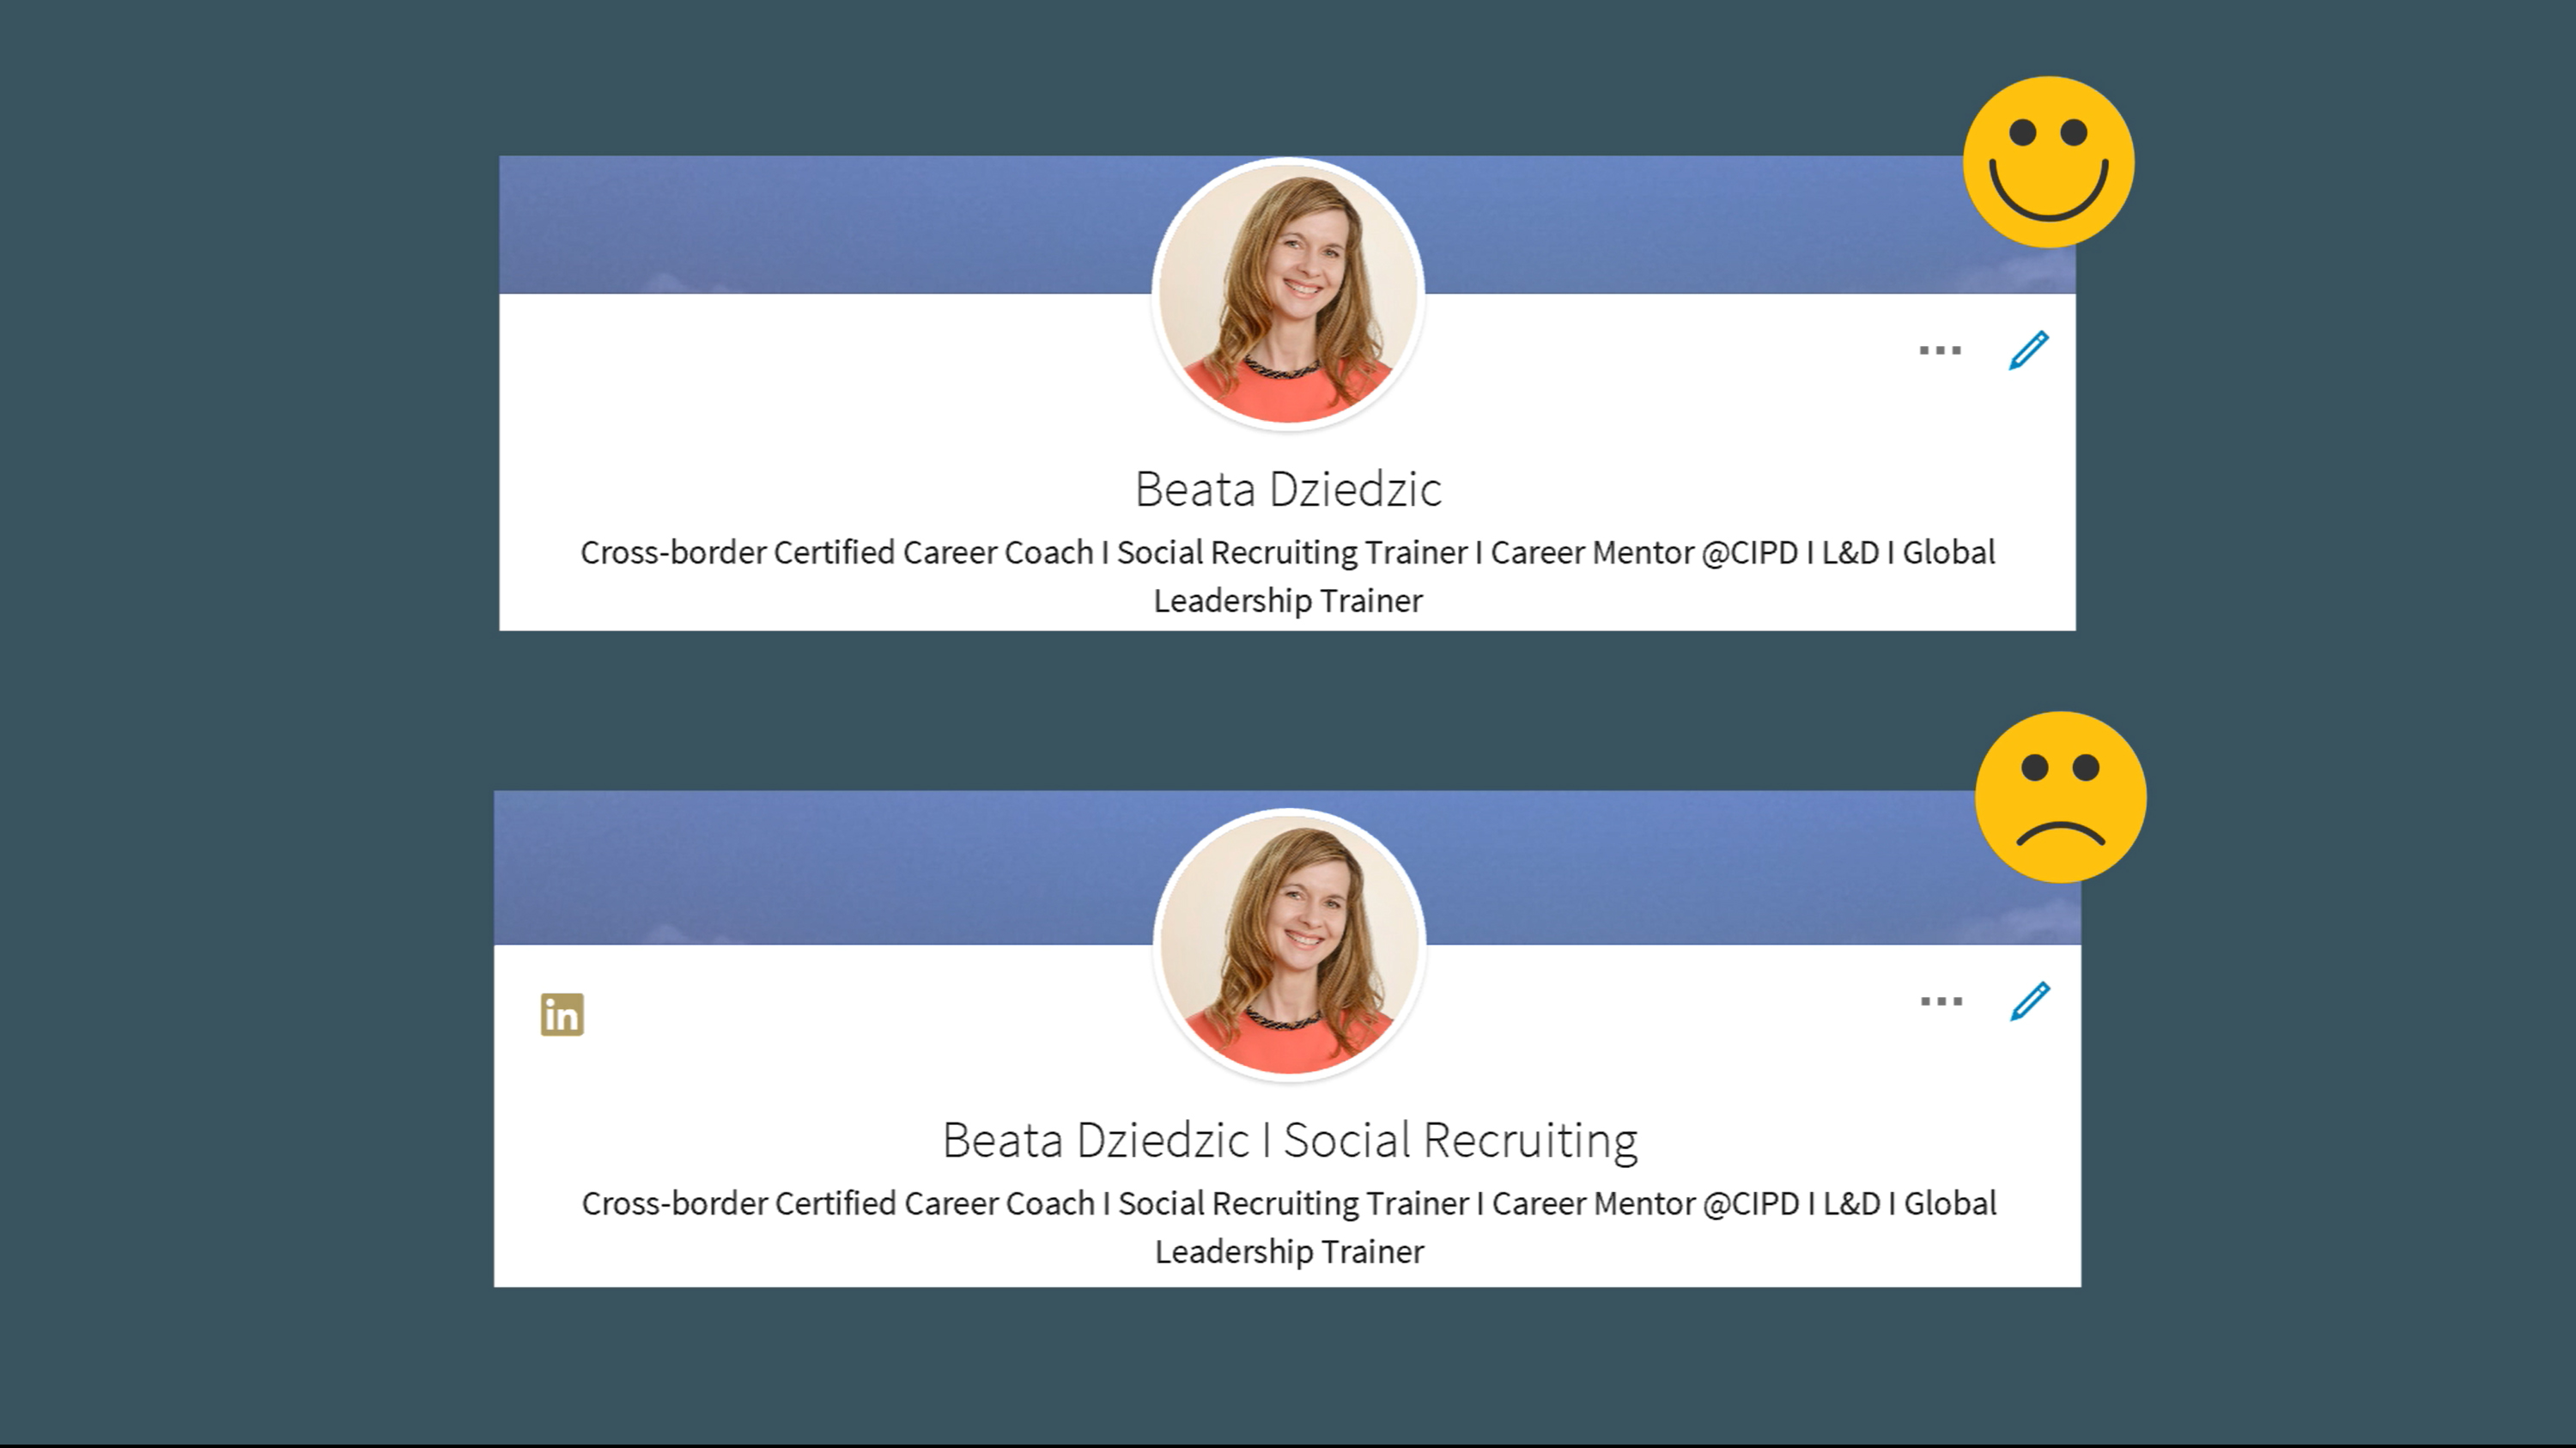 Creating an Influential LinkedIn Profile